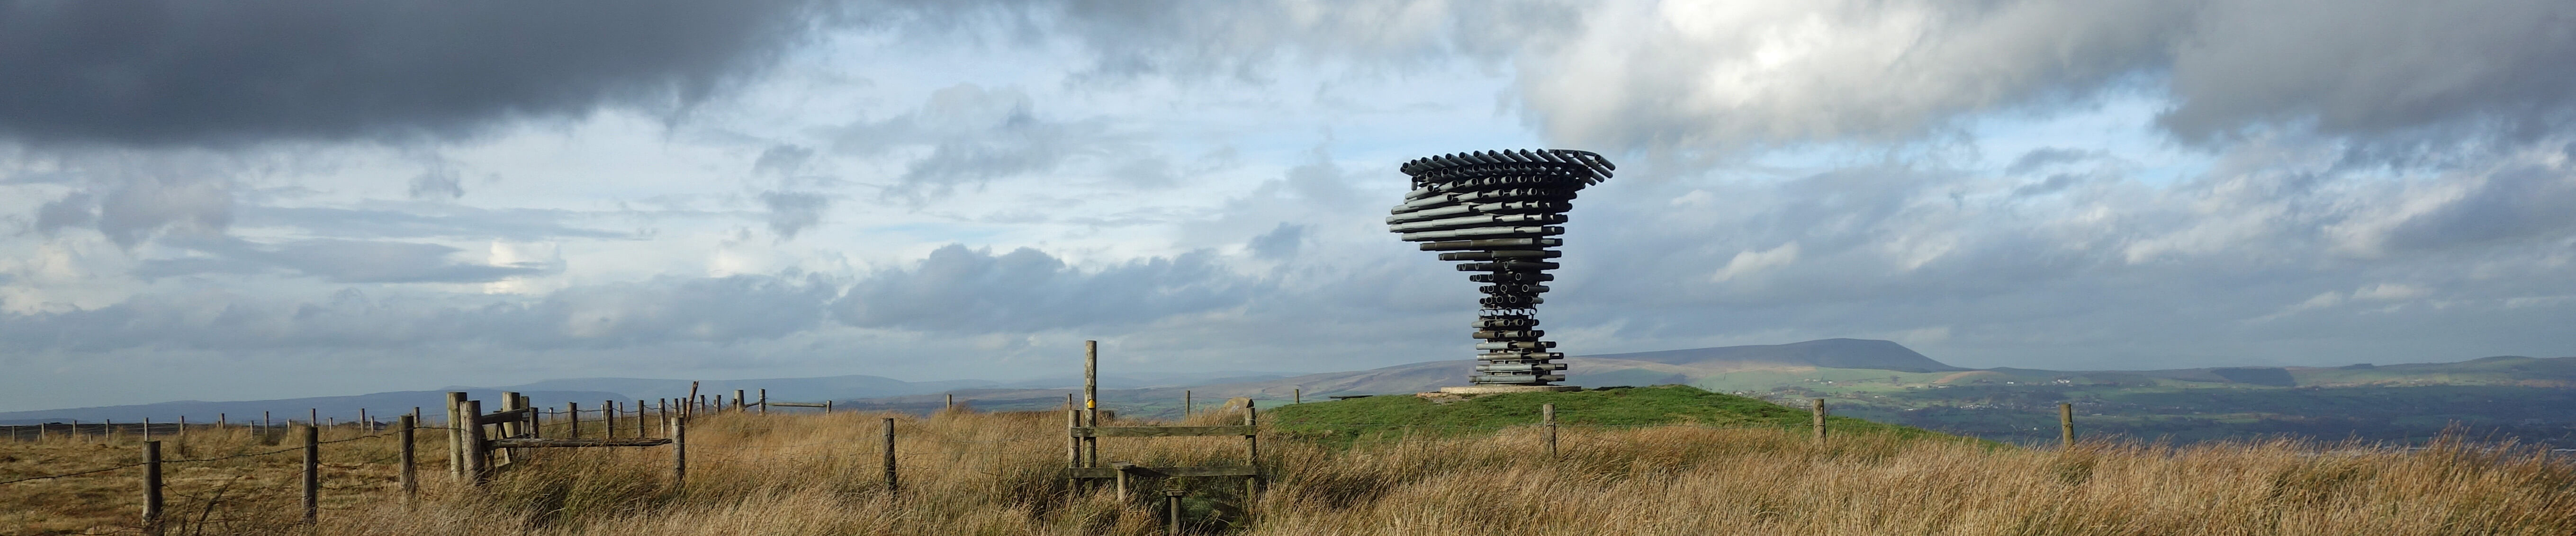 singing ringing tree-felling